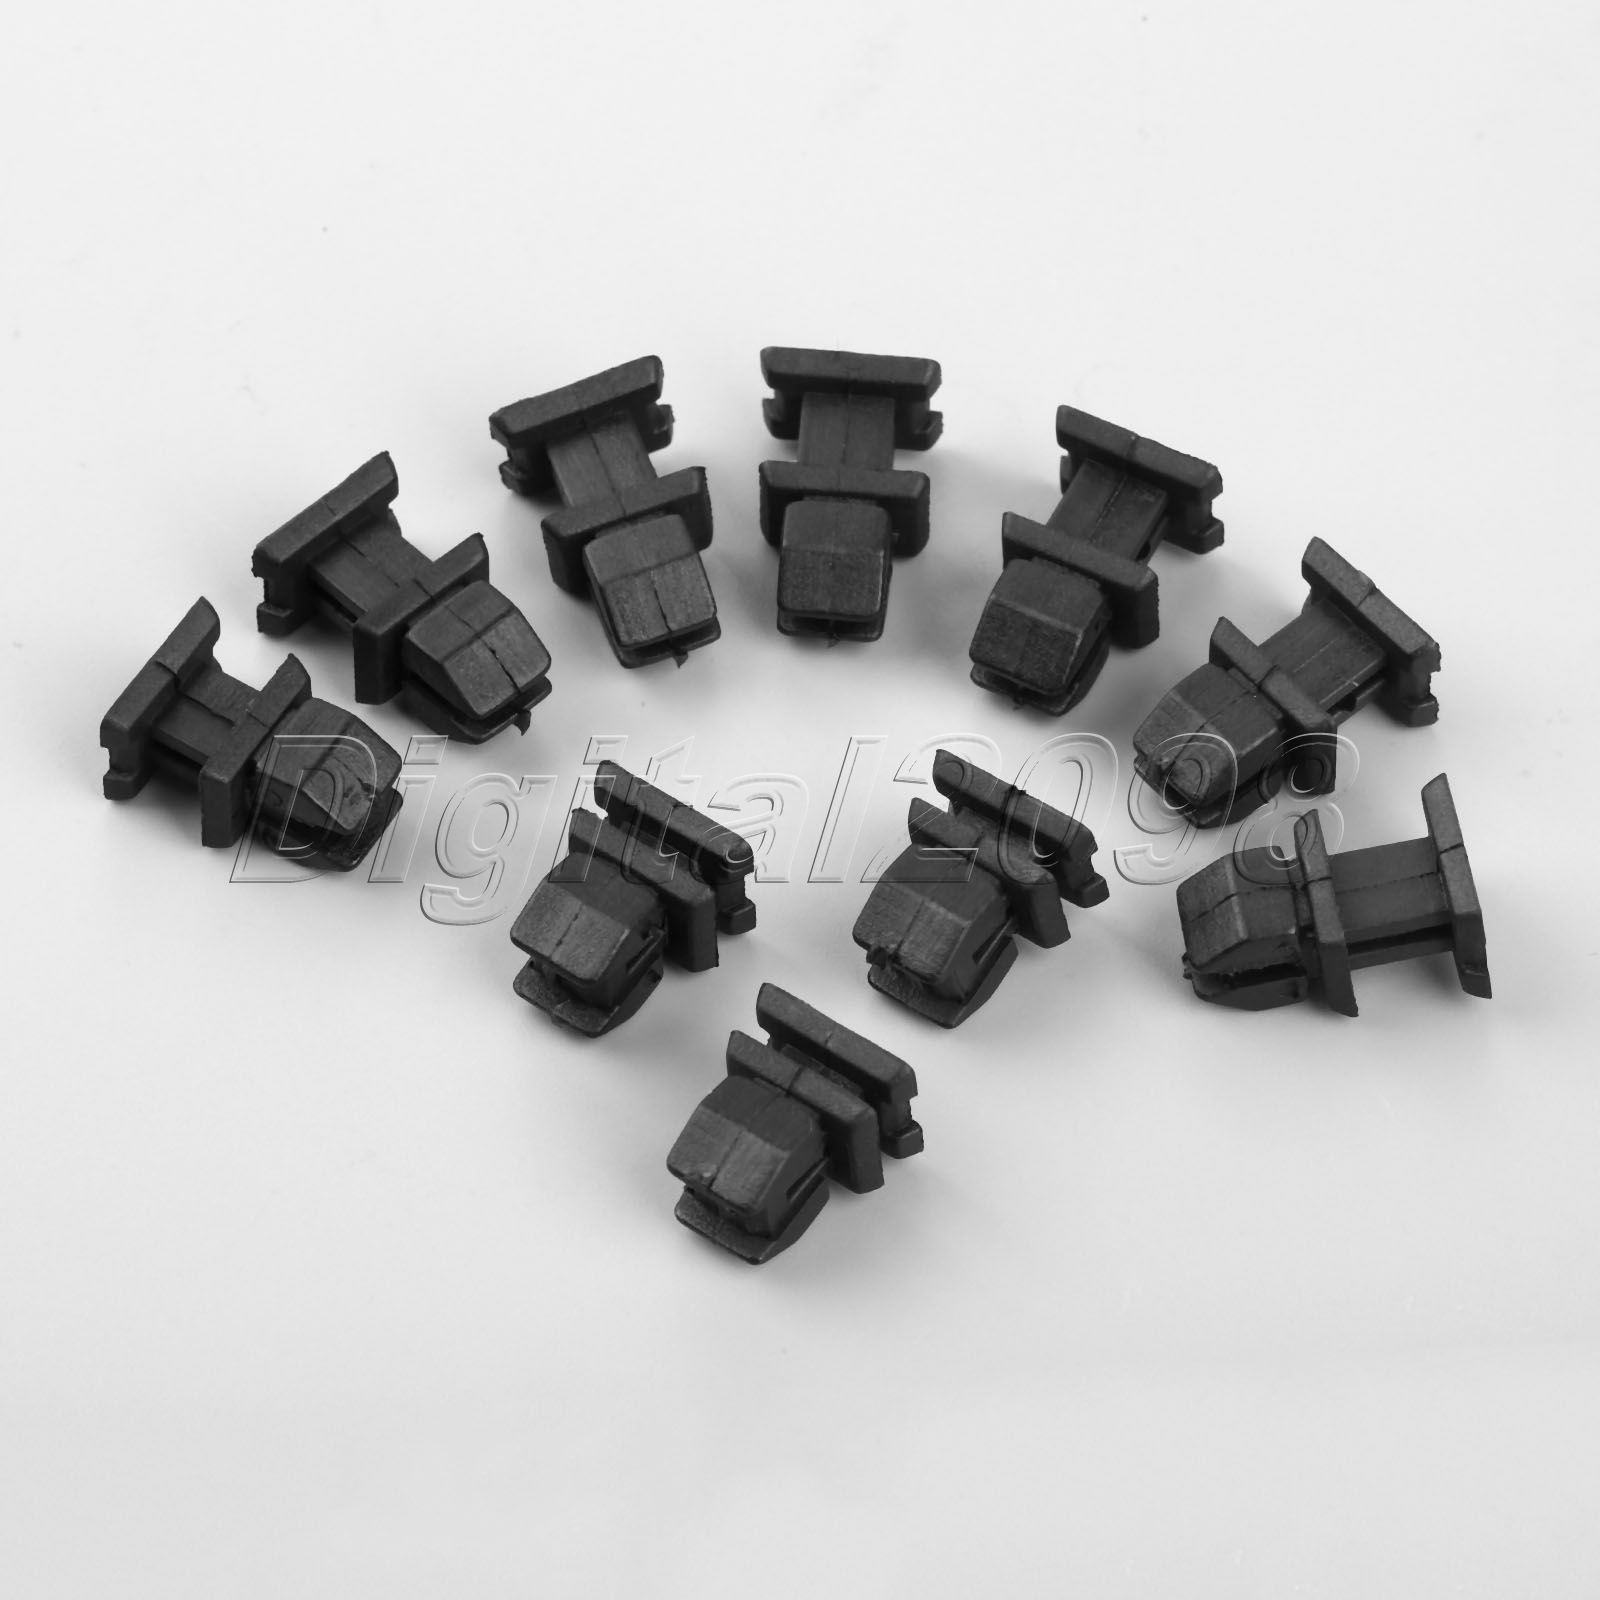 10x Auto Fasteners Boot Trim Clips Strip Cover For <font><b>Mercedes</b></font> <font><b>Benz</b></font> SLK CLK SL S W220 <font><b>W140</b></font> CLS CLASS Car Plastic Rivets Automobile image